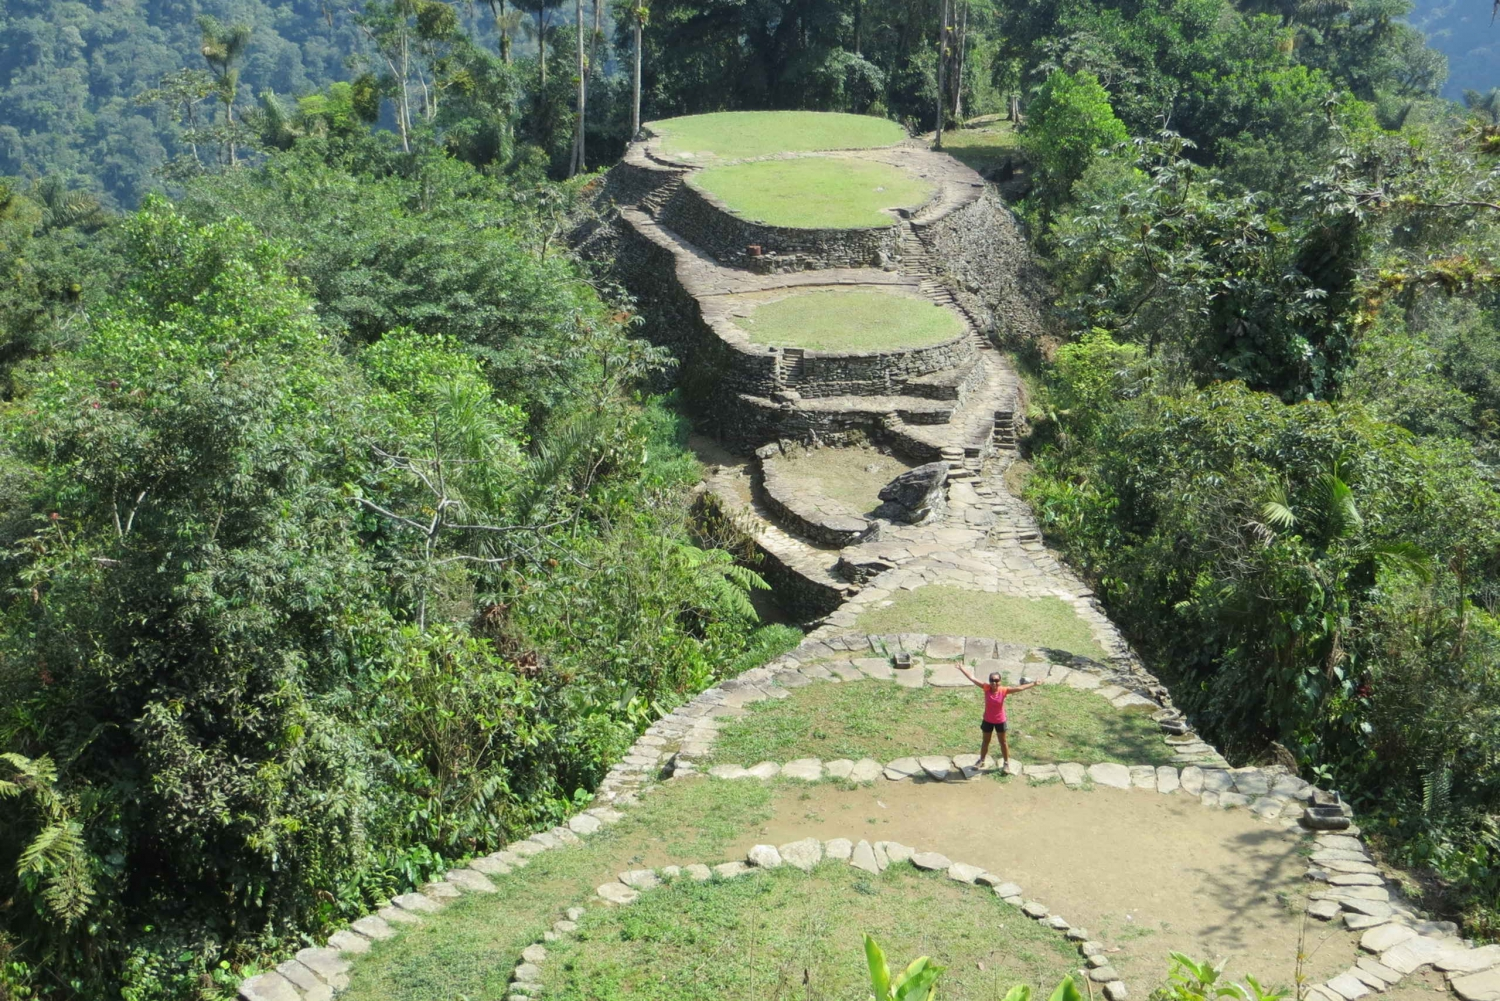 Santa Marta: 6 Days to Discover the Lost City